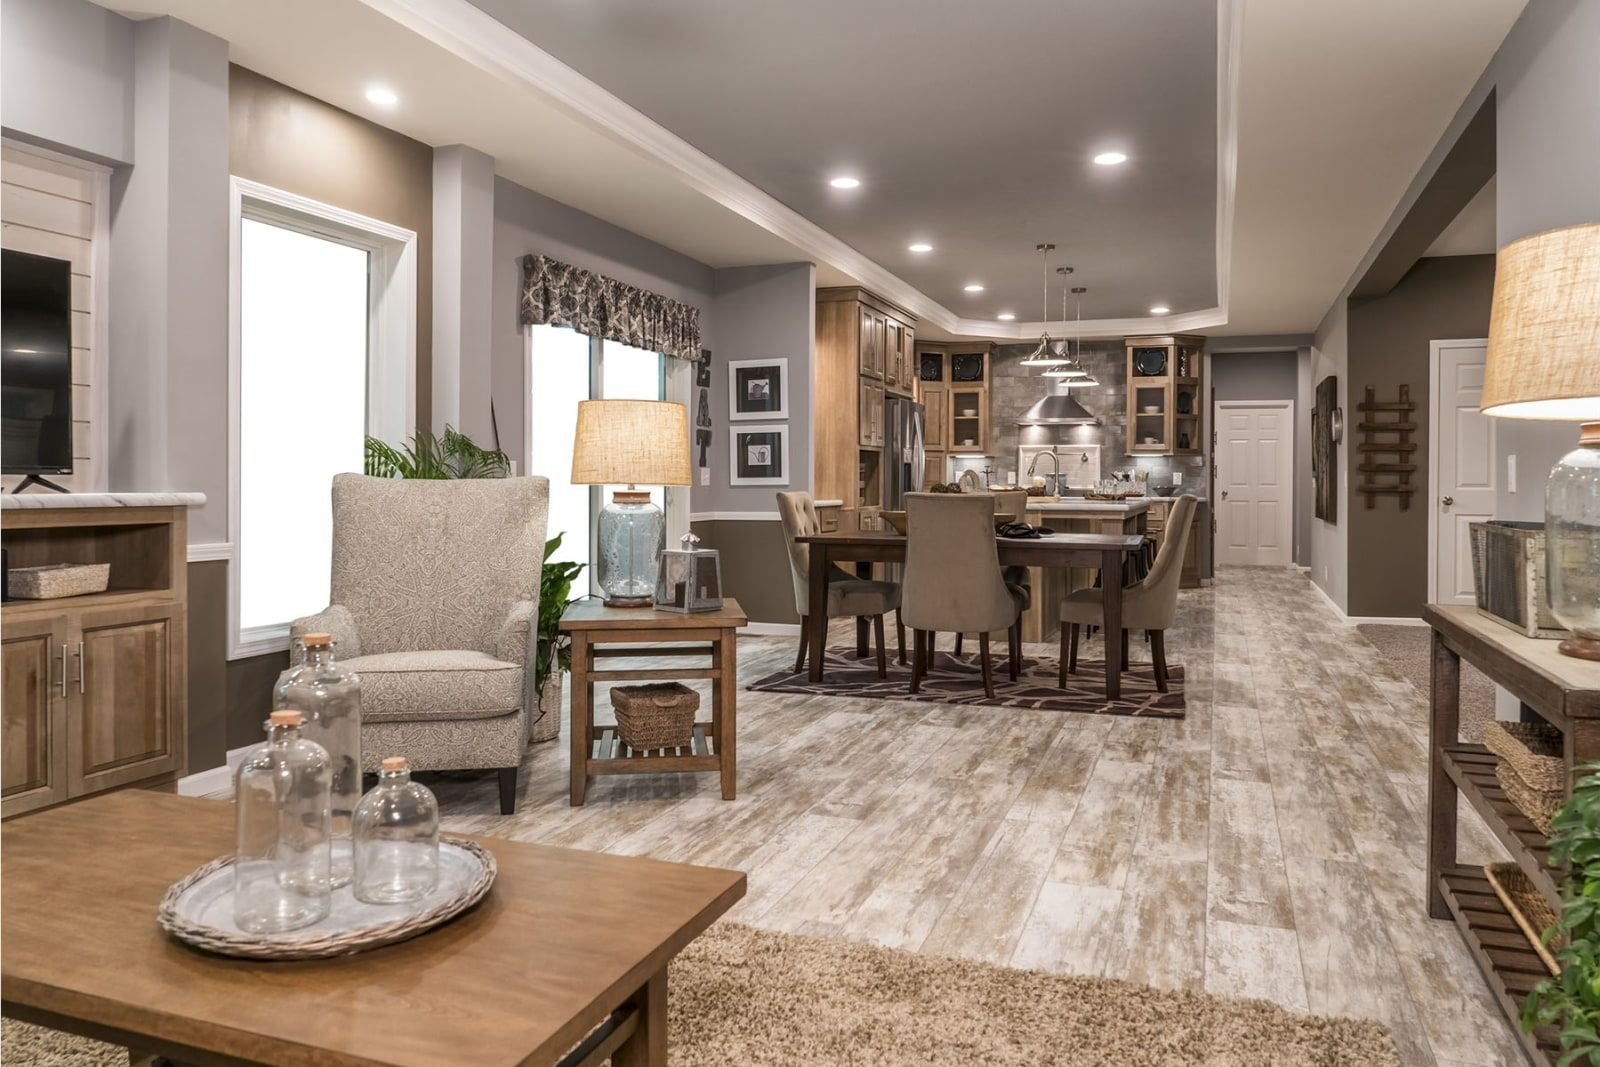 View floor plans and photos of quality manufactured